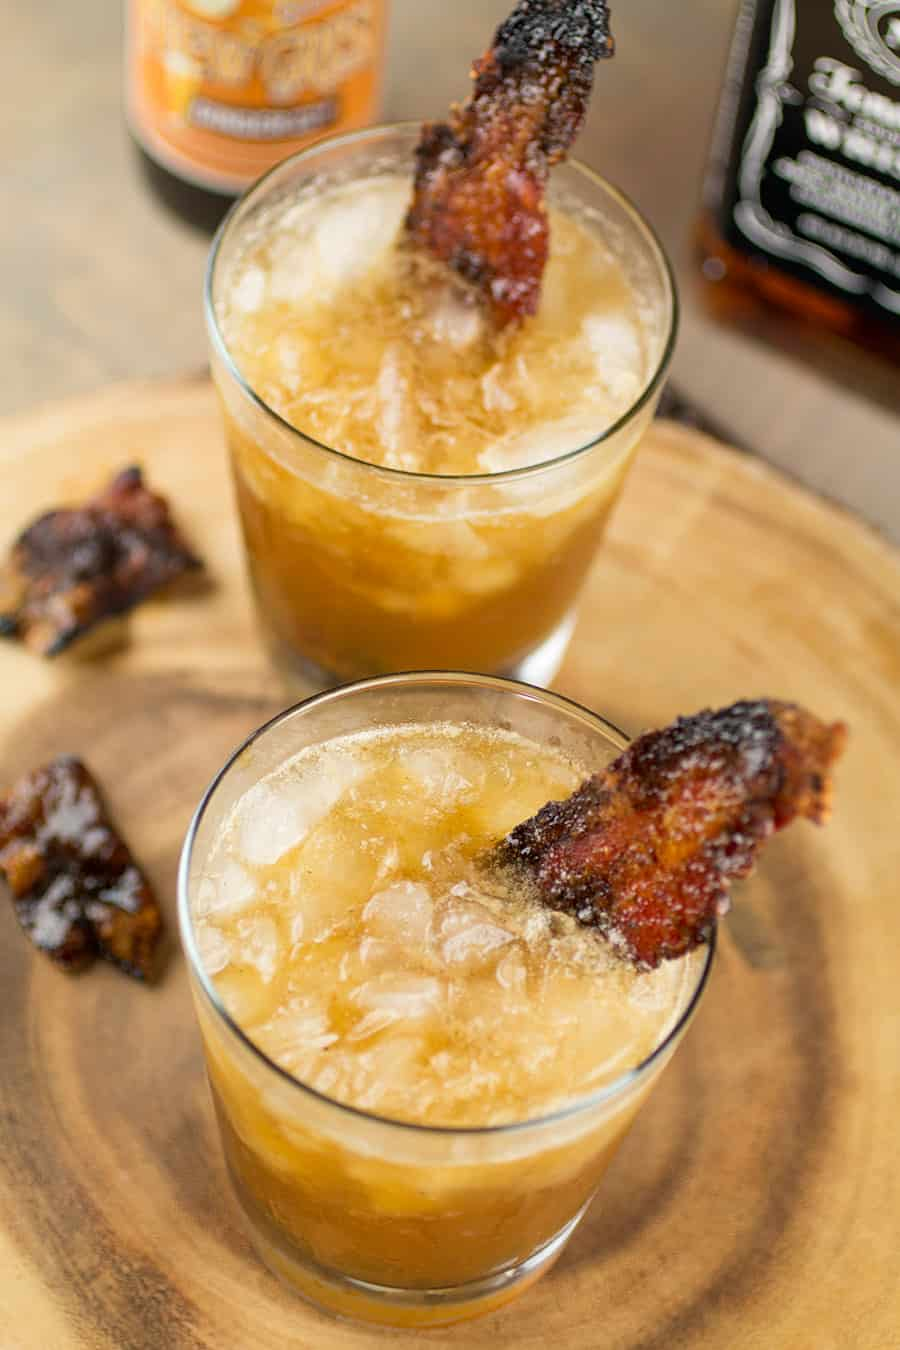 Smoky Whiskey Mule Cocktail in a glass with candied bacon